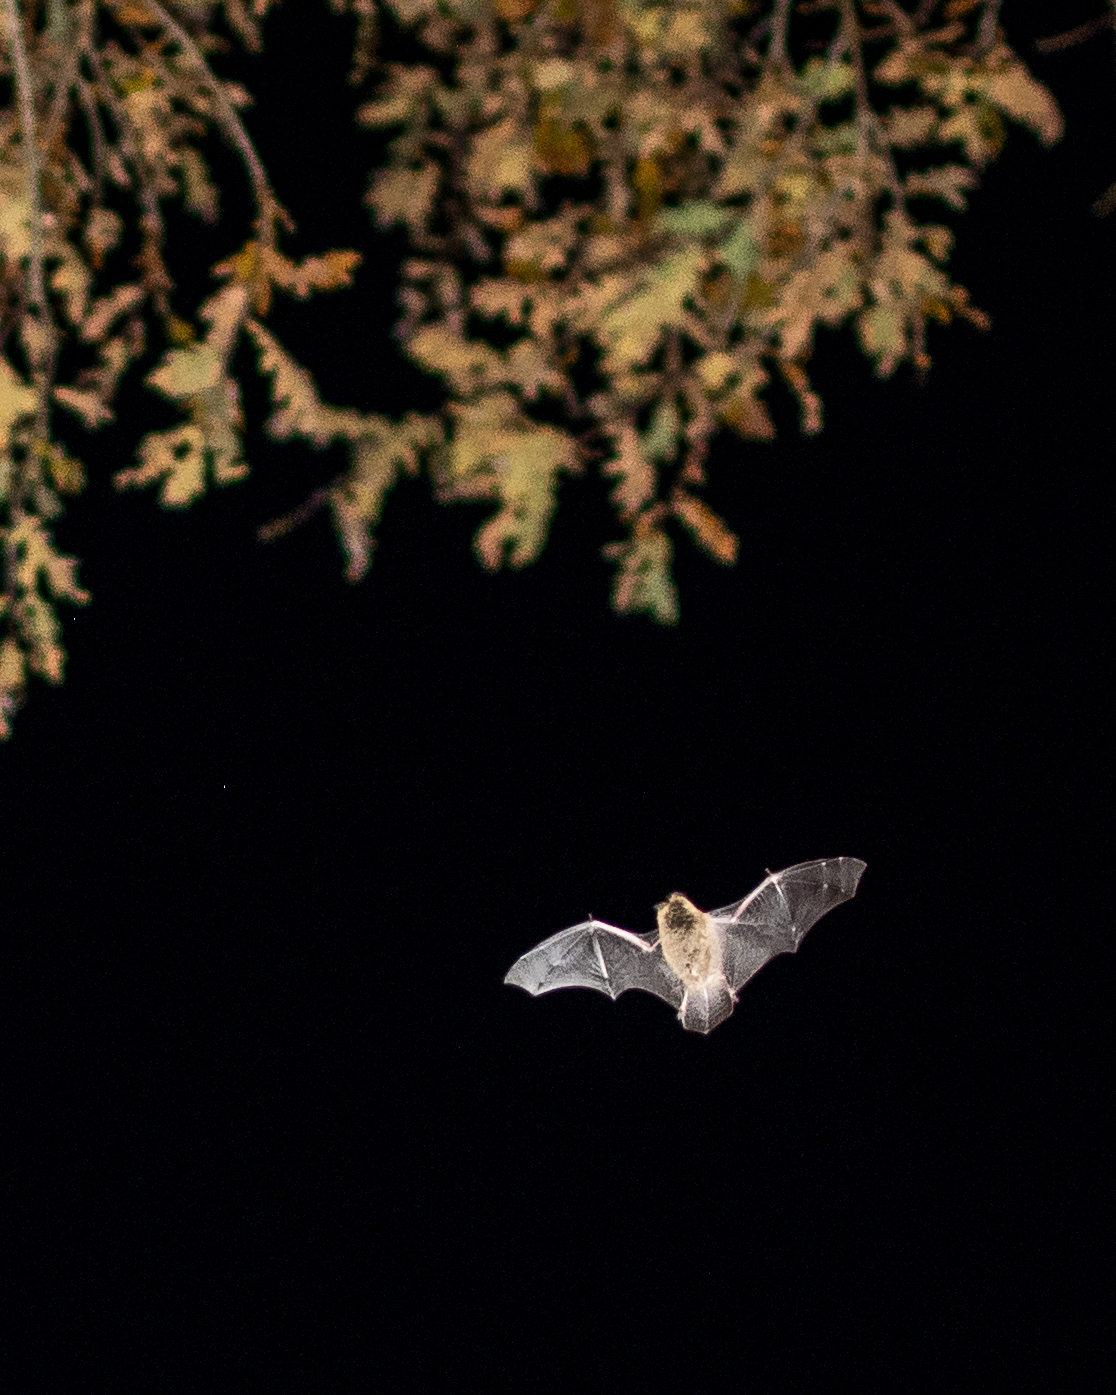 Pipistrelle Bat feeding on insects over the lake